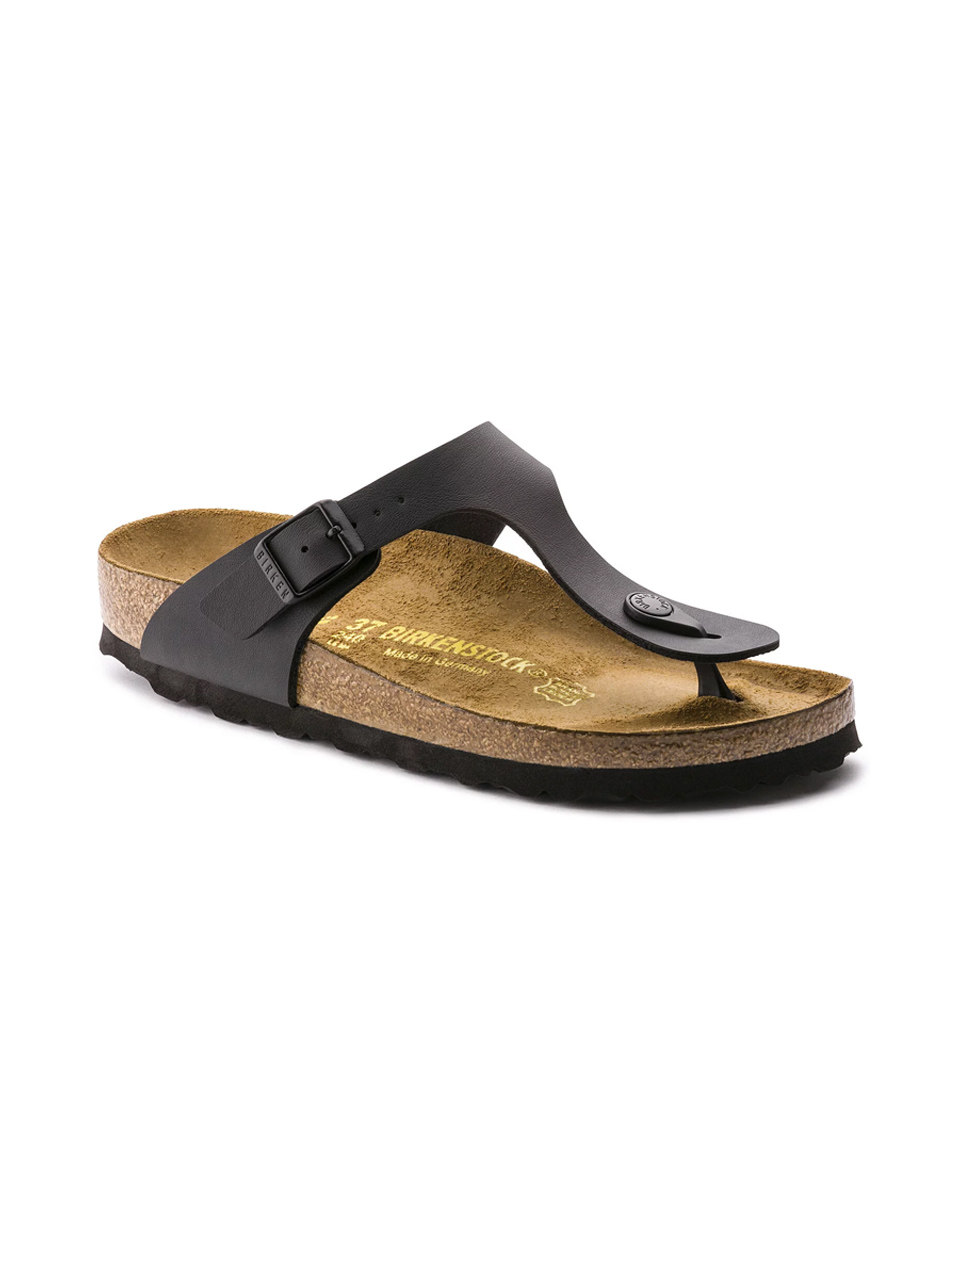 SANDAL GIZEH NARROW